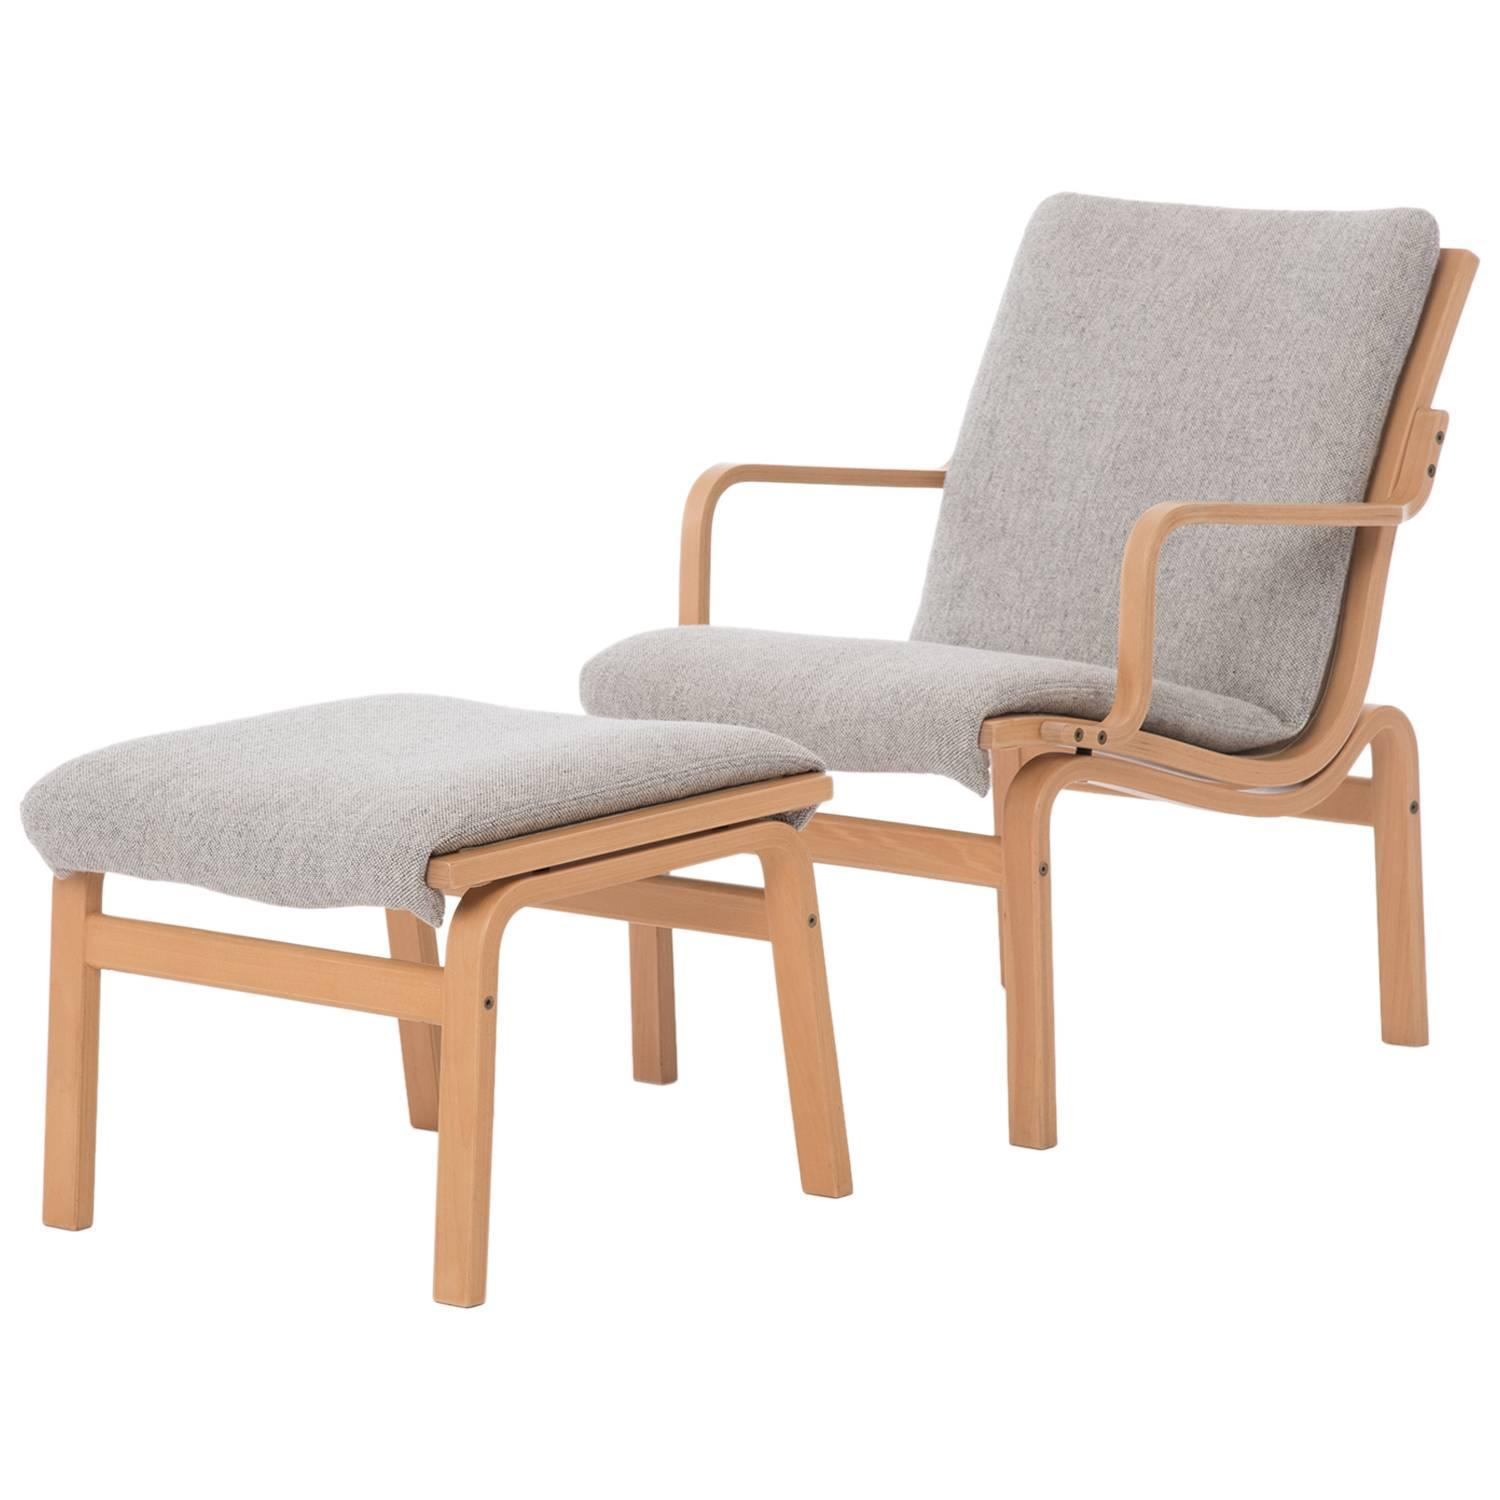 modern bentwood chairs folding chair green danish and ottoman for sale at 1stdibs